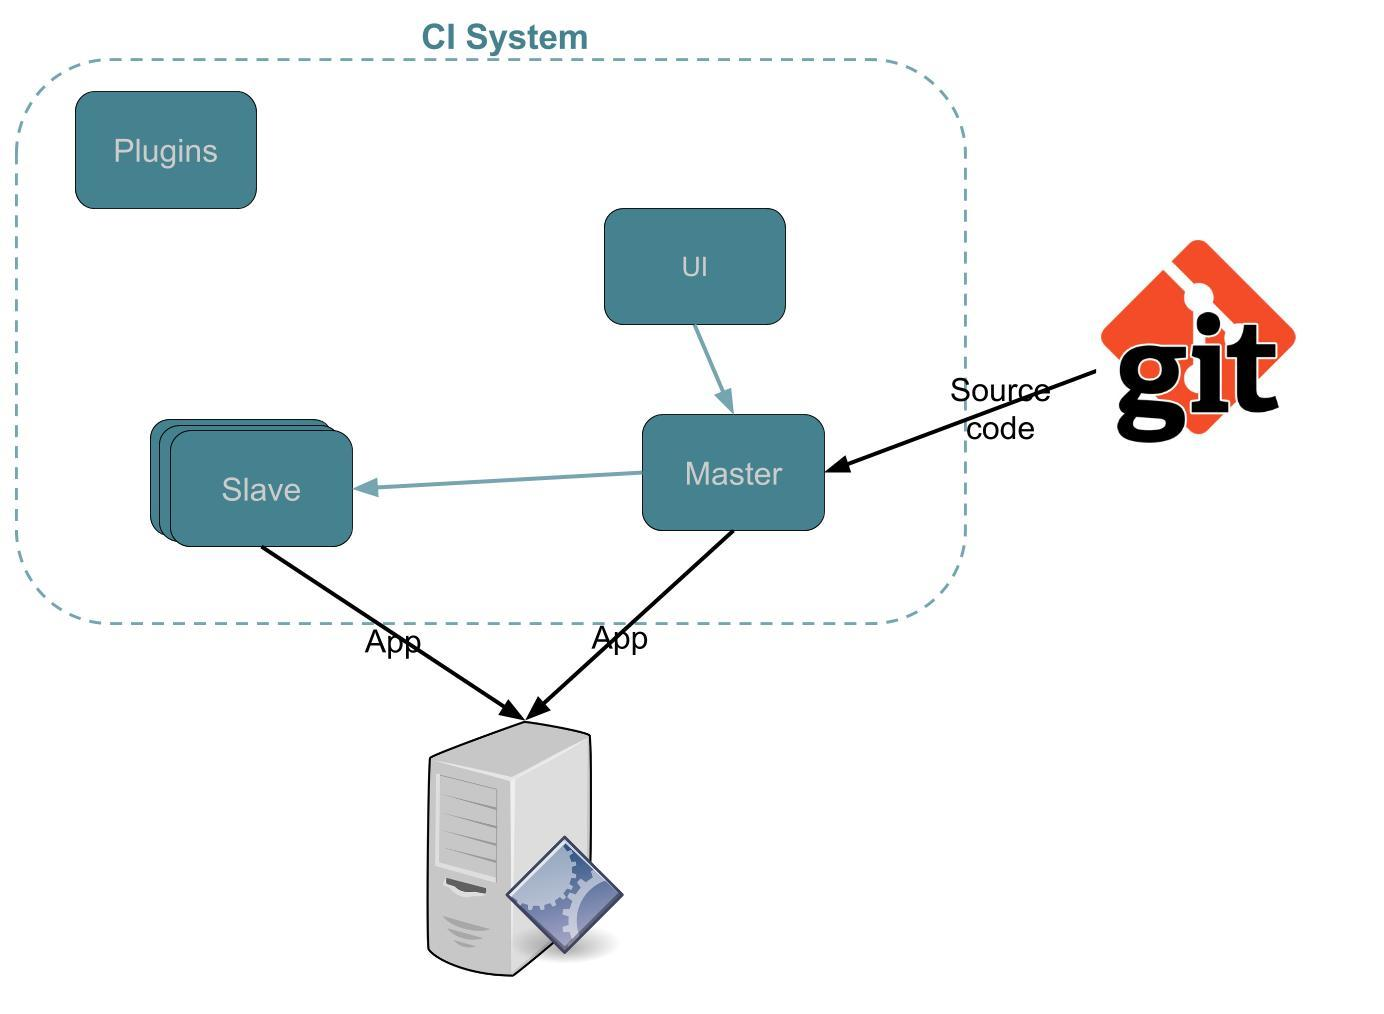 Протокол dhcpdynamic host configuration protocol (dhcp)